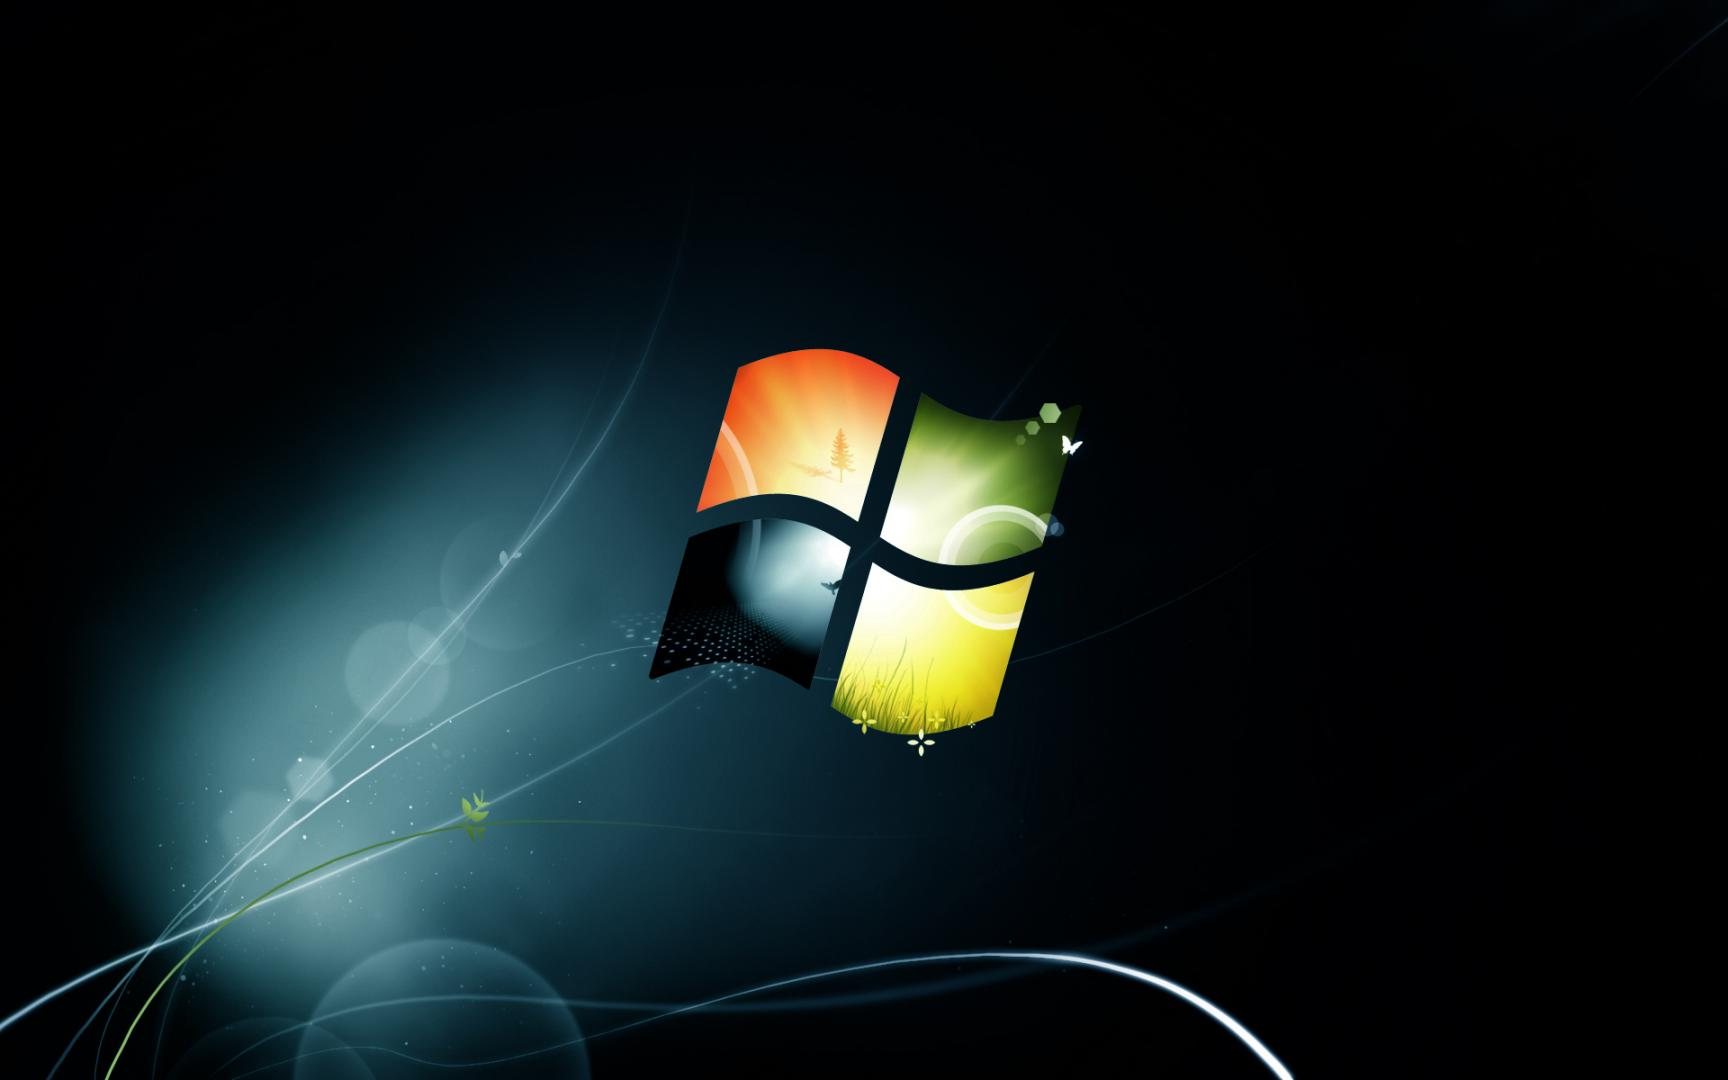 windows_7_wallpaper_by_nando377-d48odg4.jpg